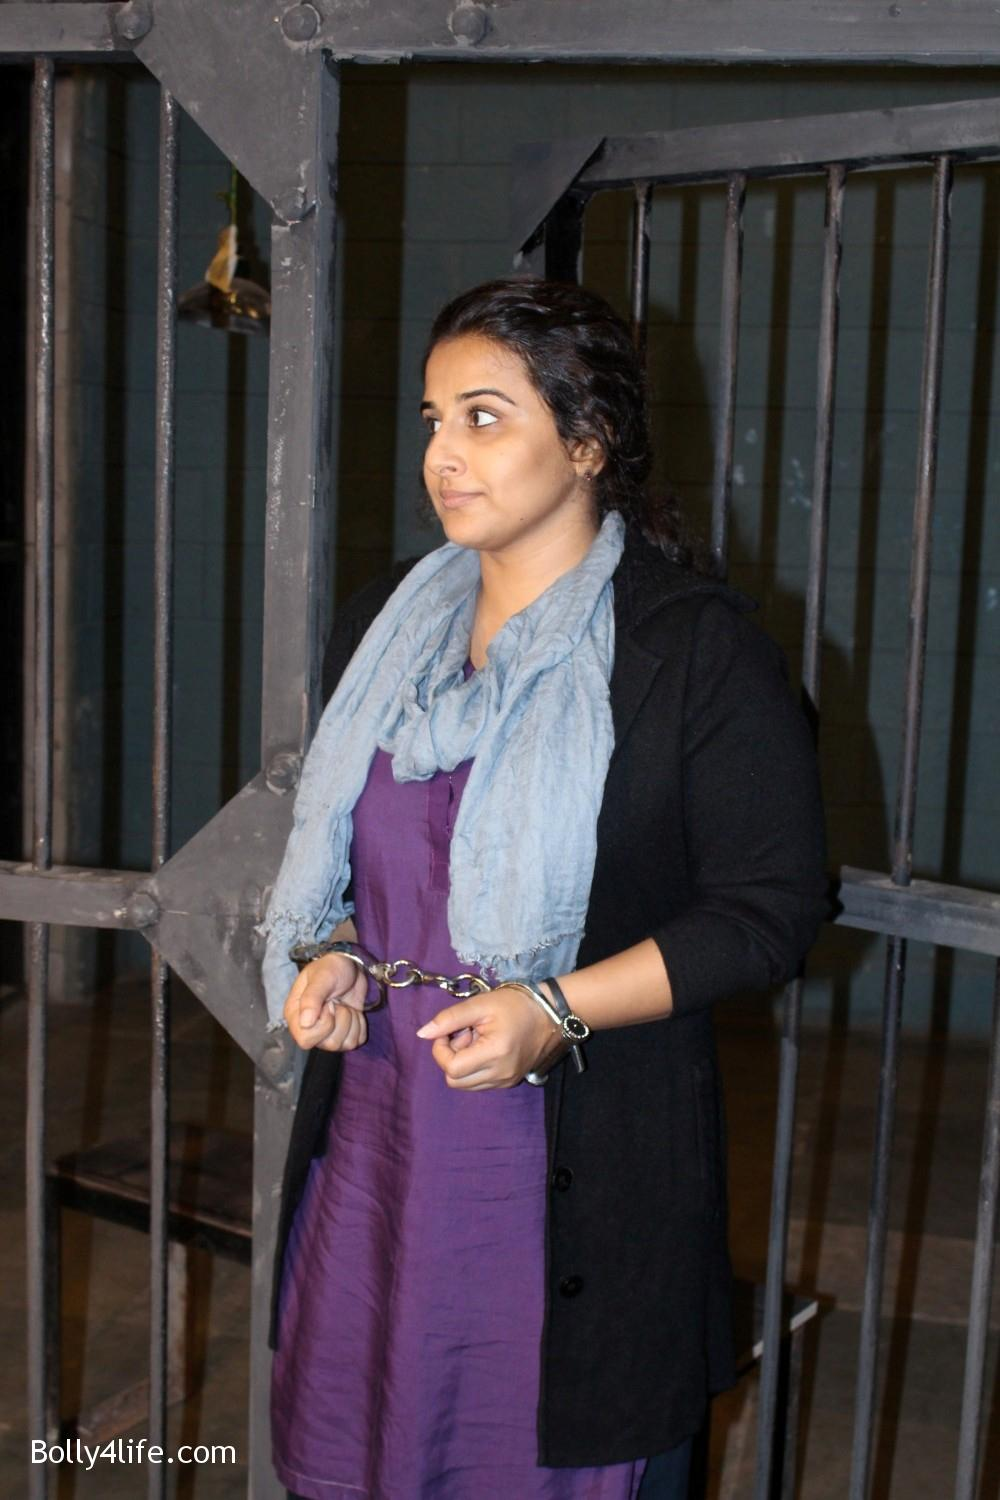 Vidya-Balan-during-the-Interview-for-film-Kahaani-2-18.jpg